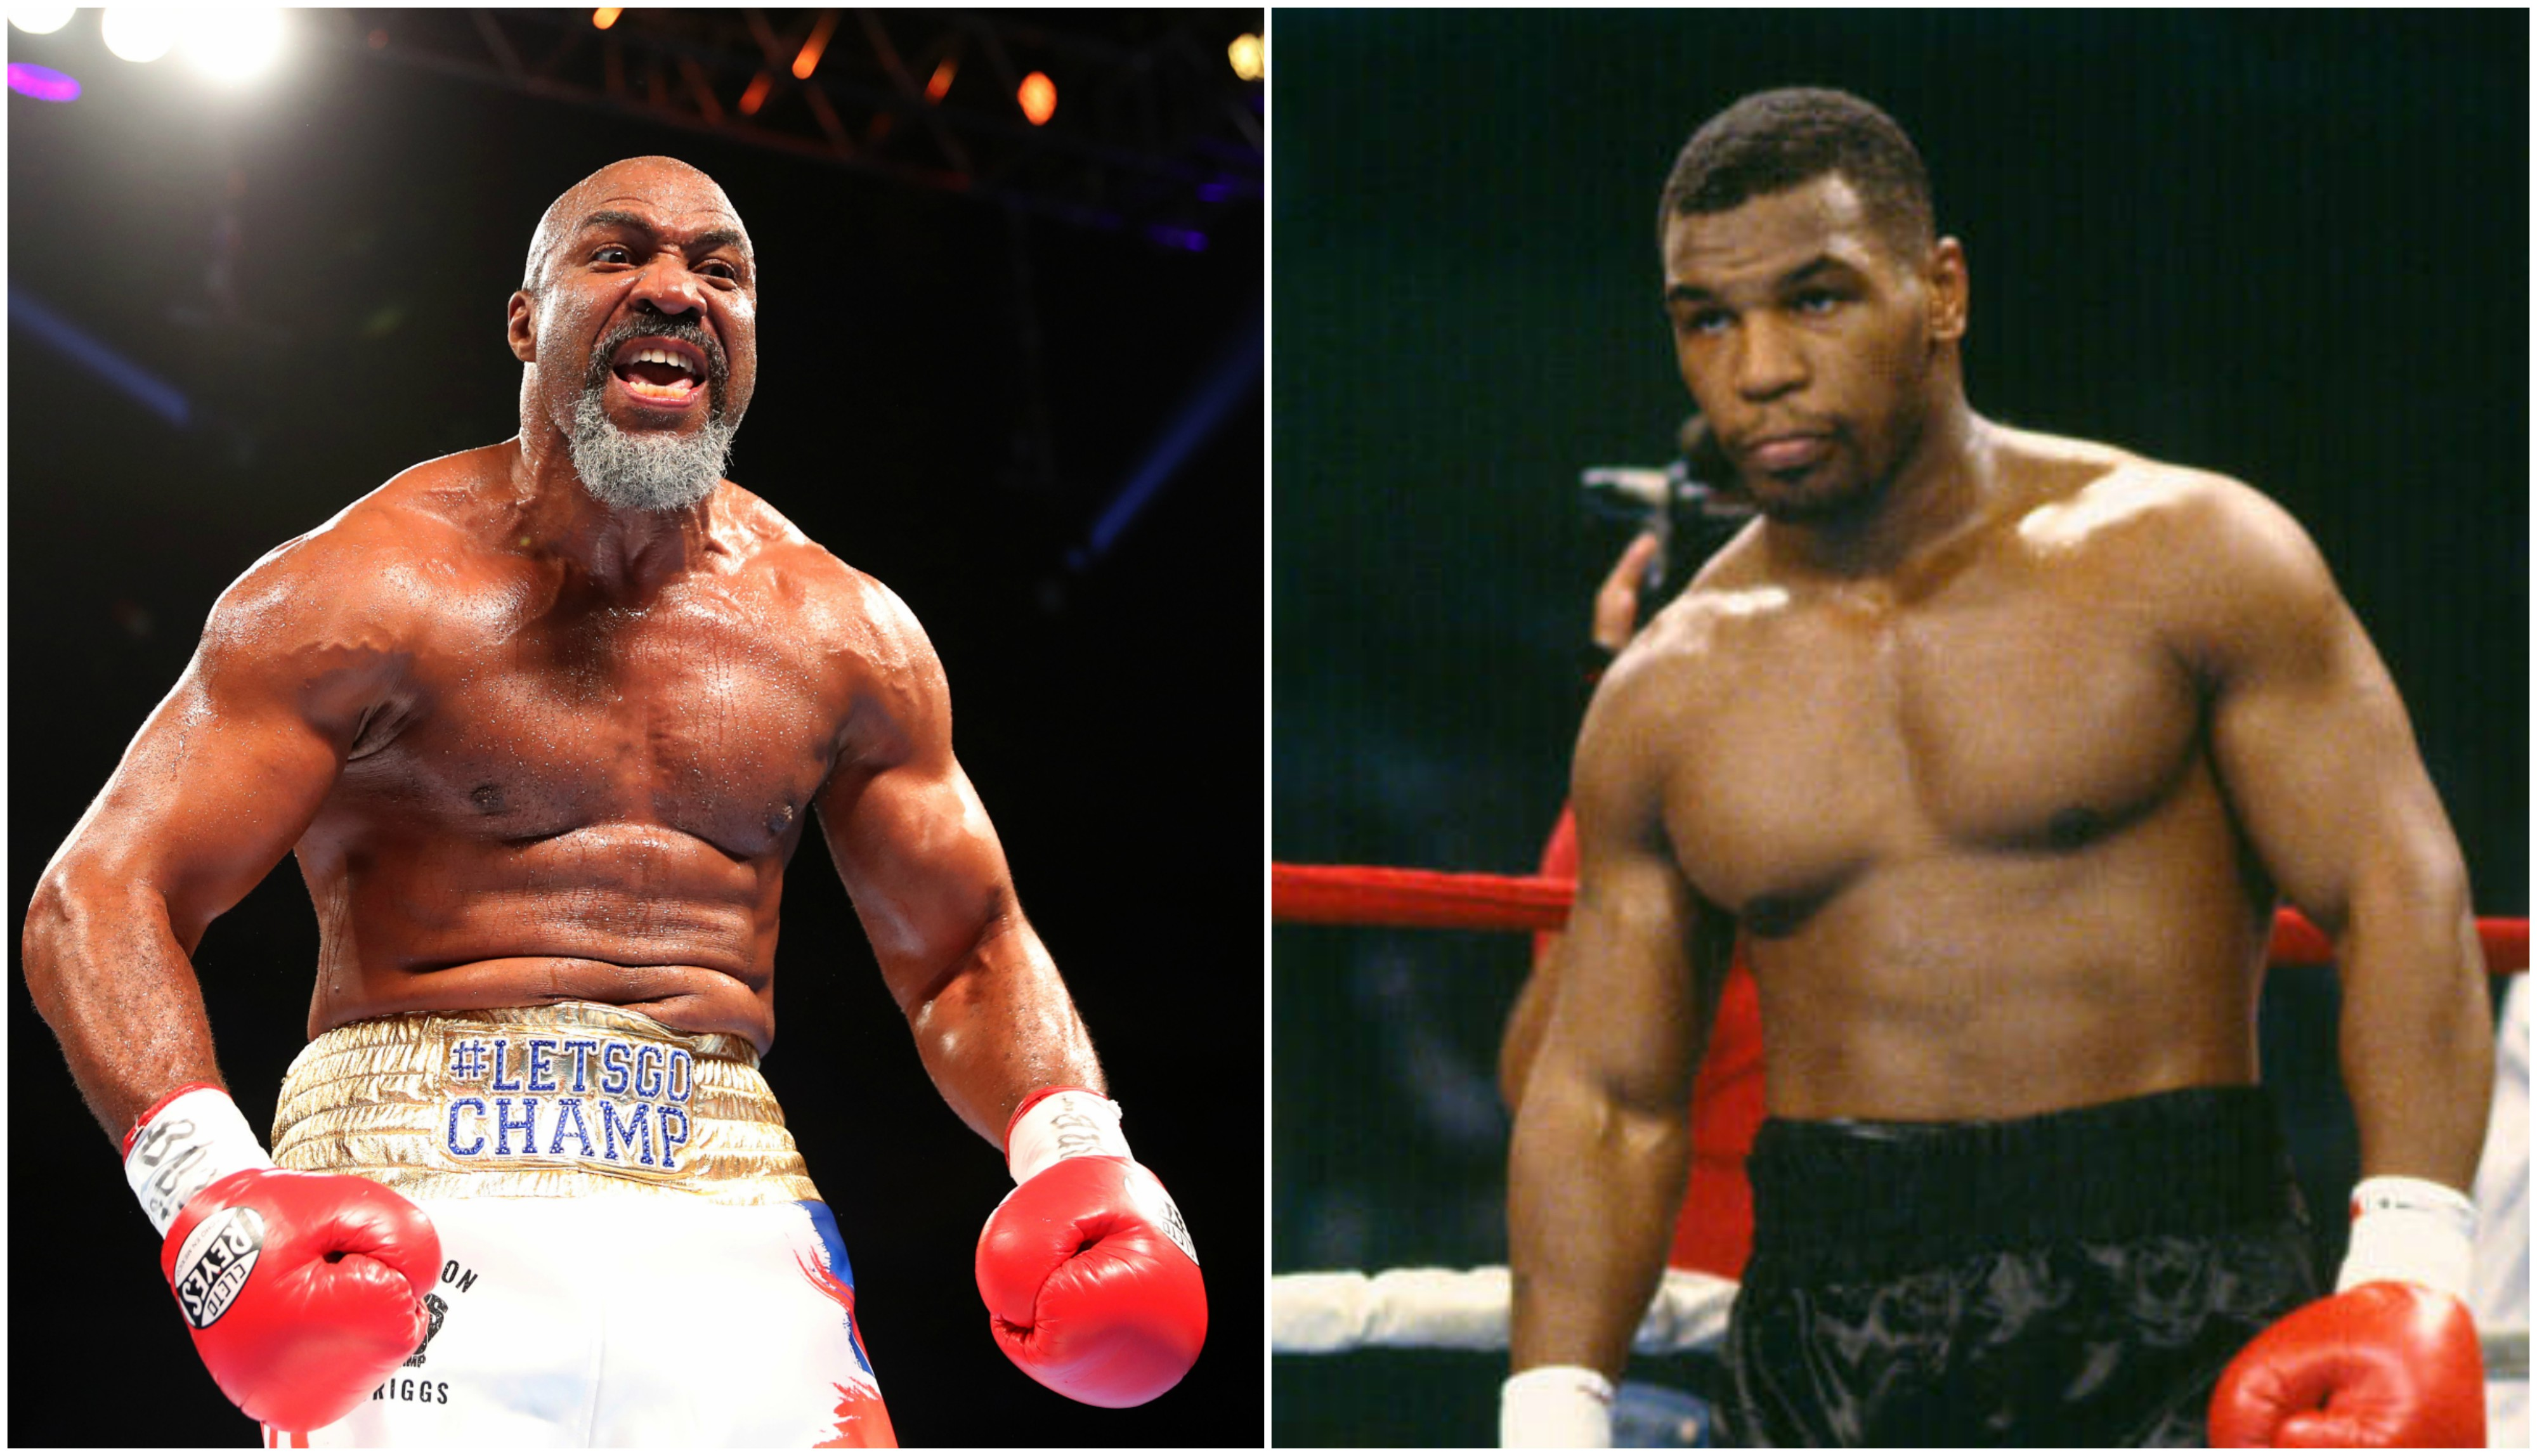 Shannon Briggs claims fight agreed with returning Mike Tyson - Mike Tyson